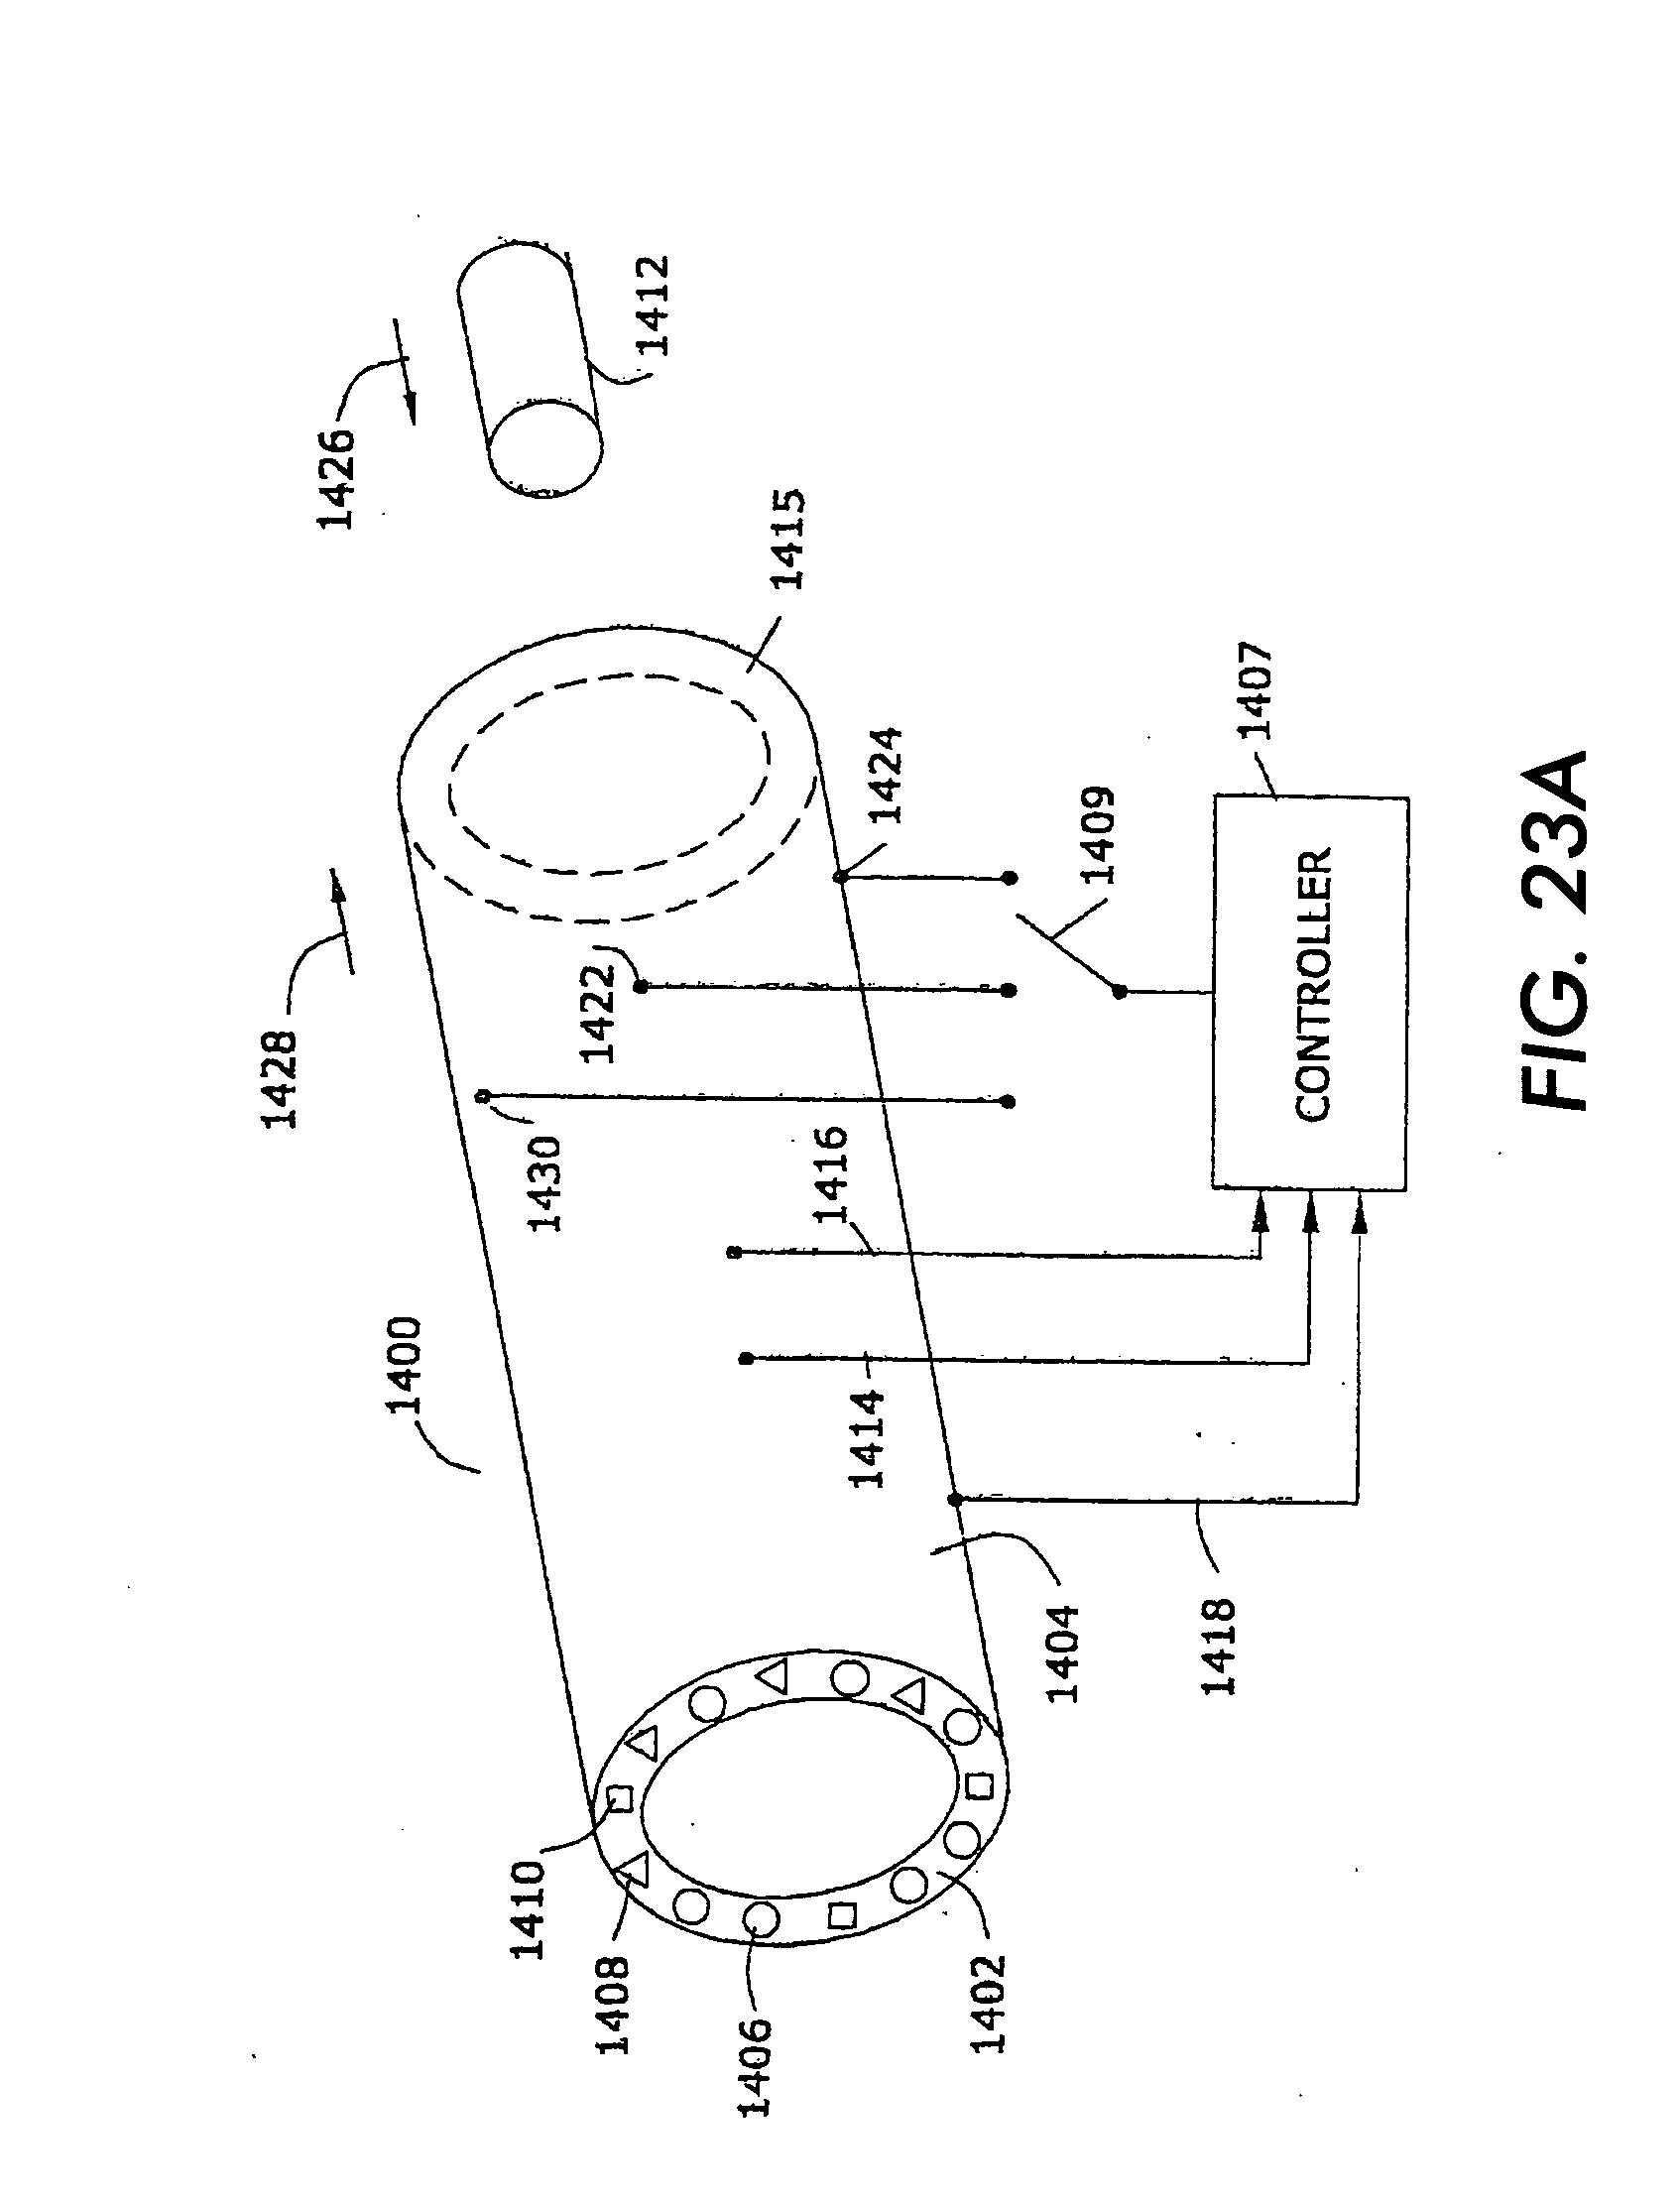 patent us 20040210289a1 High School Sports Field Diagram patent images